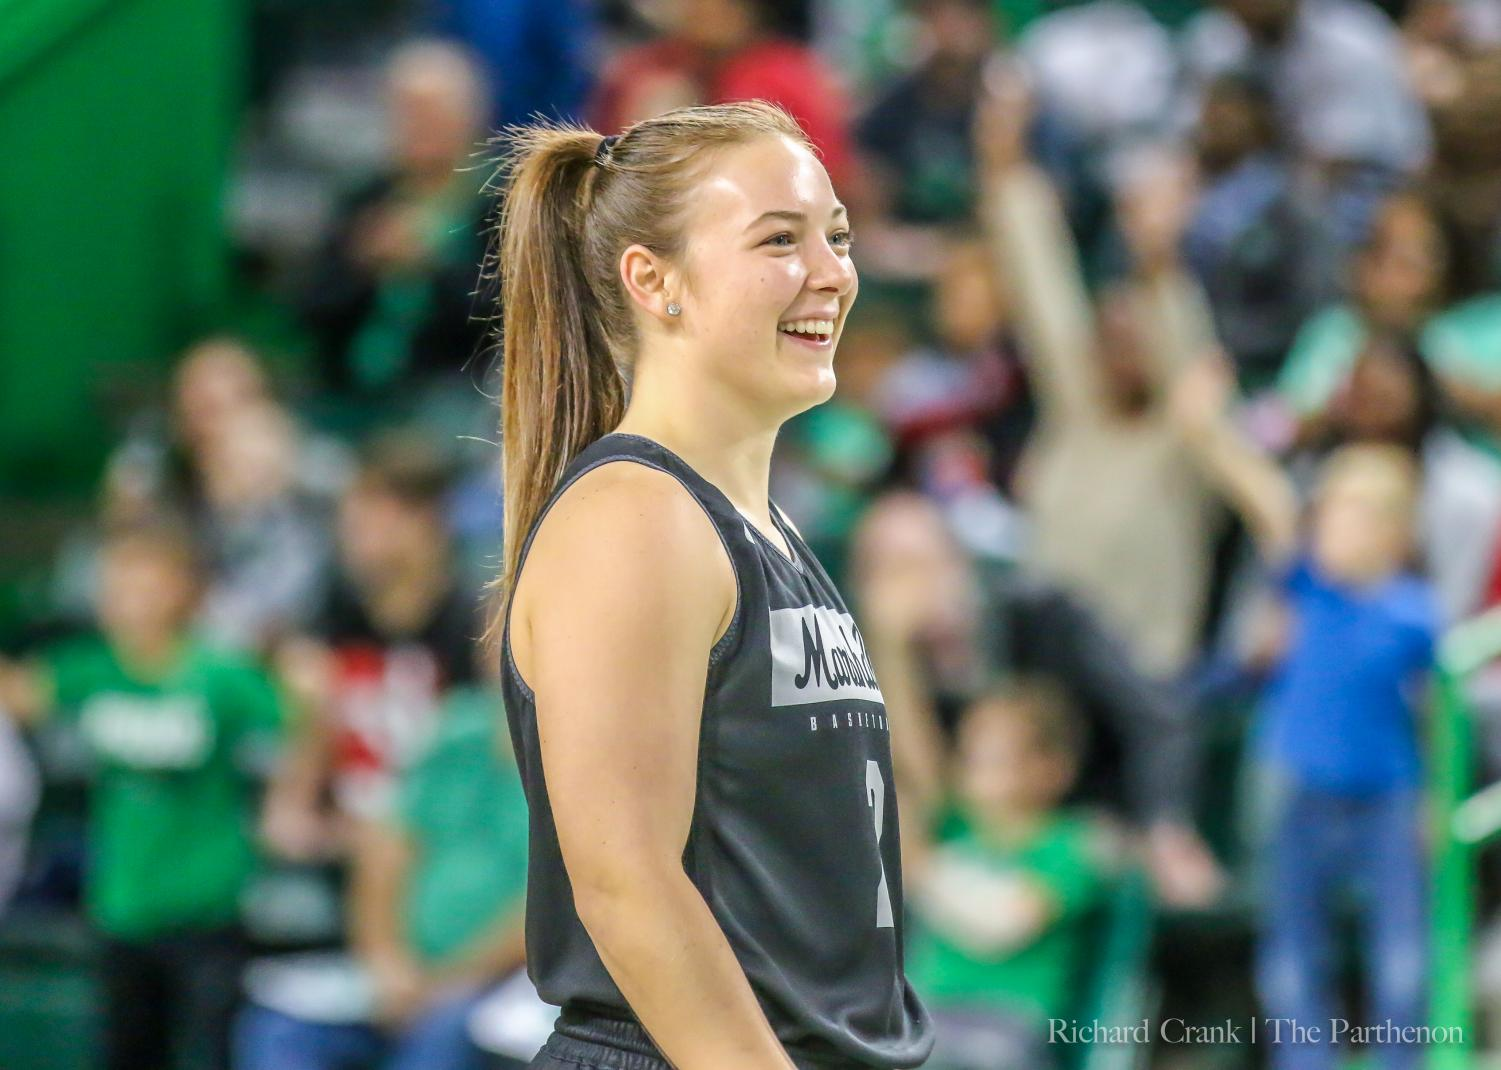 Kristen Mayo is all smiles at the Herd Madness event in October 2019.